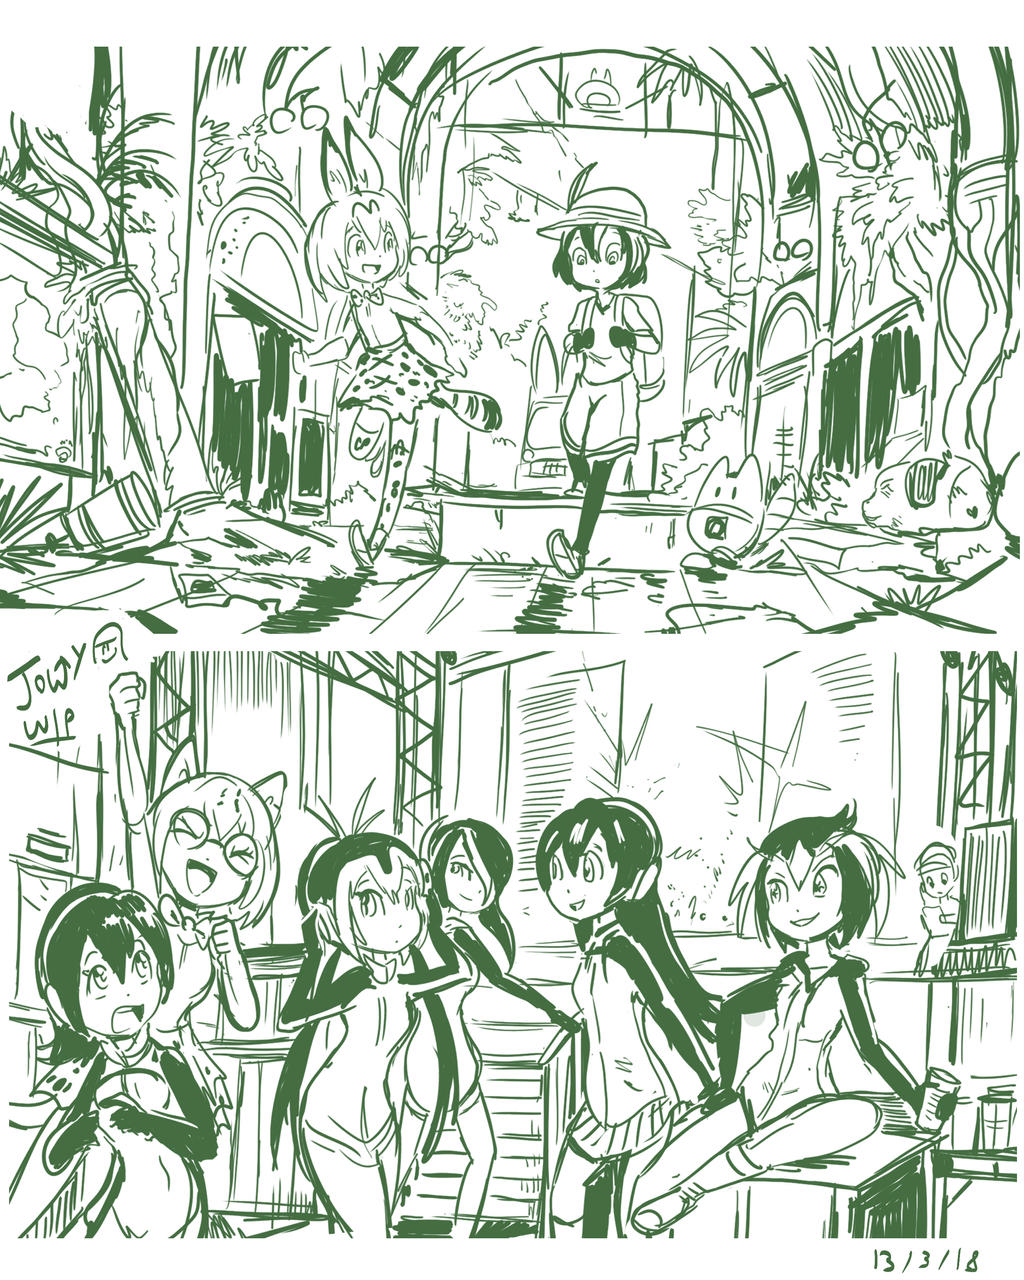 Japari Park sketches by Jowybean